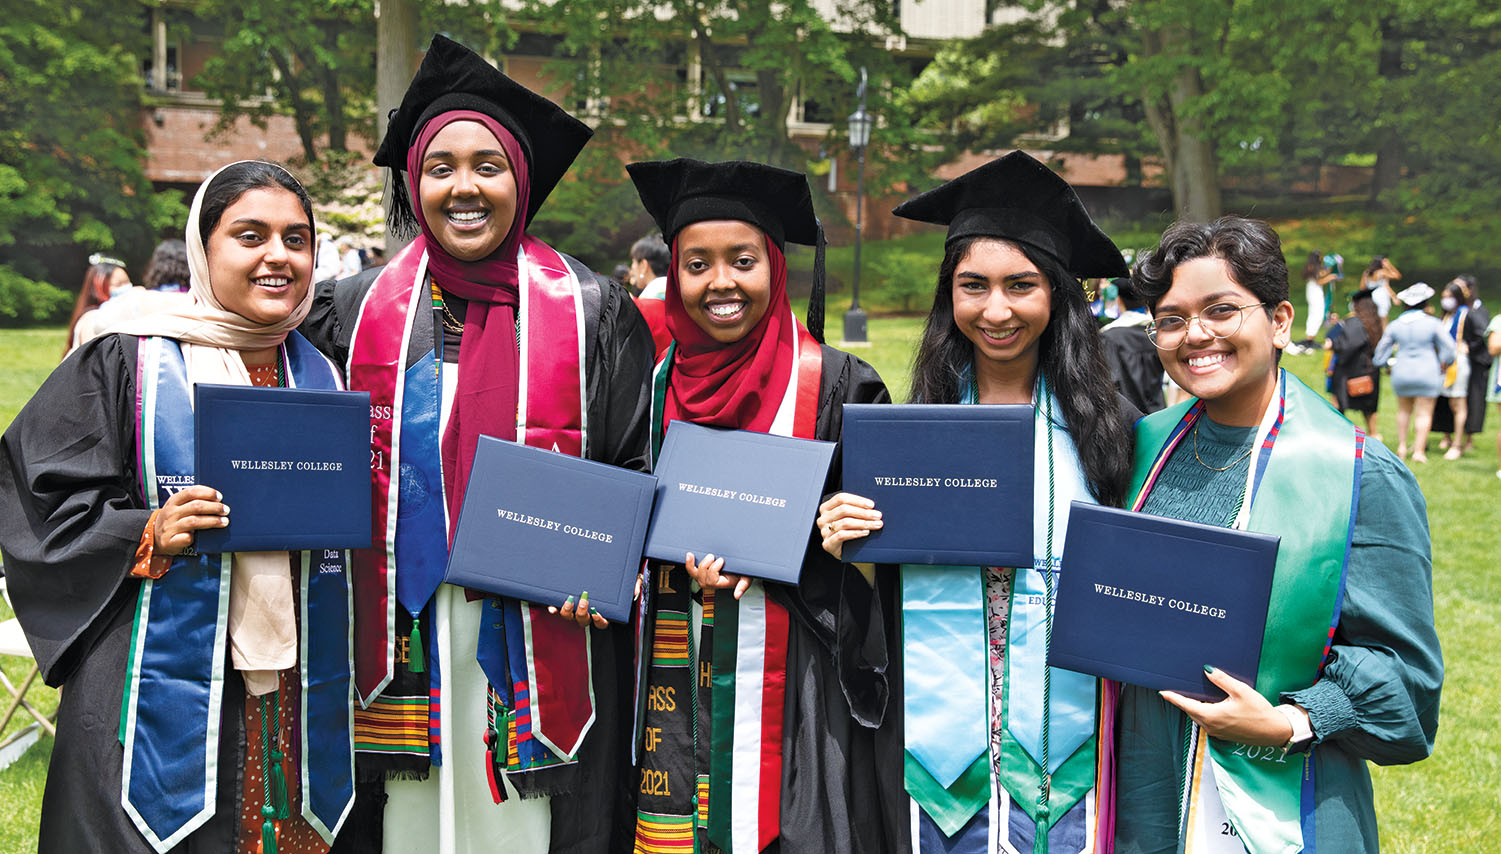 A group of students proudly display their diplomas.